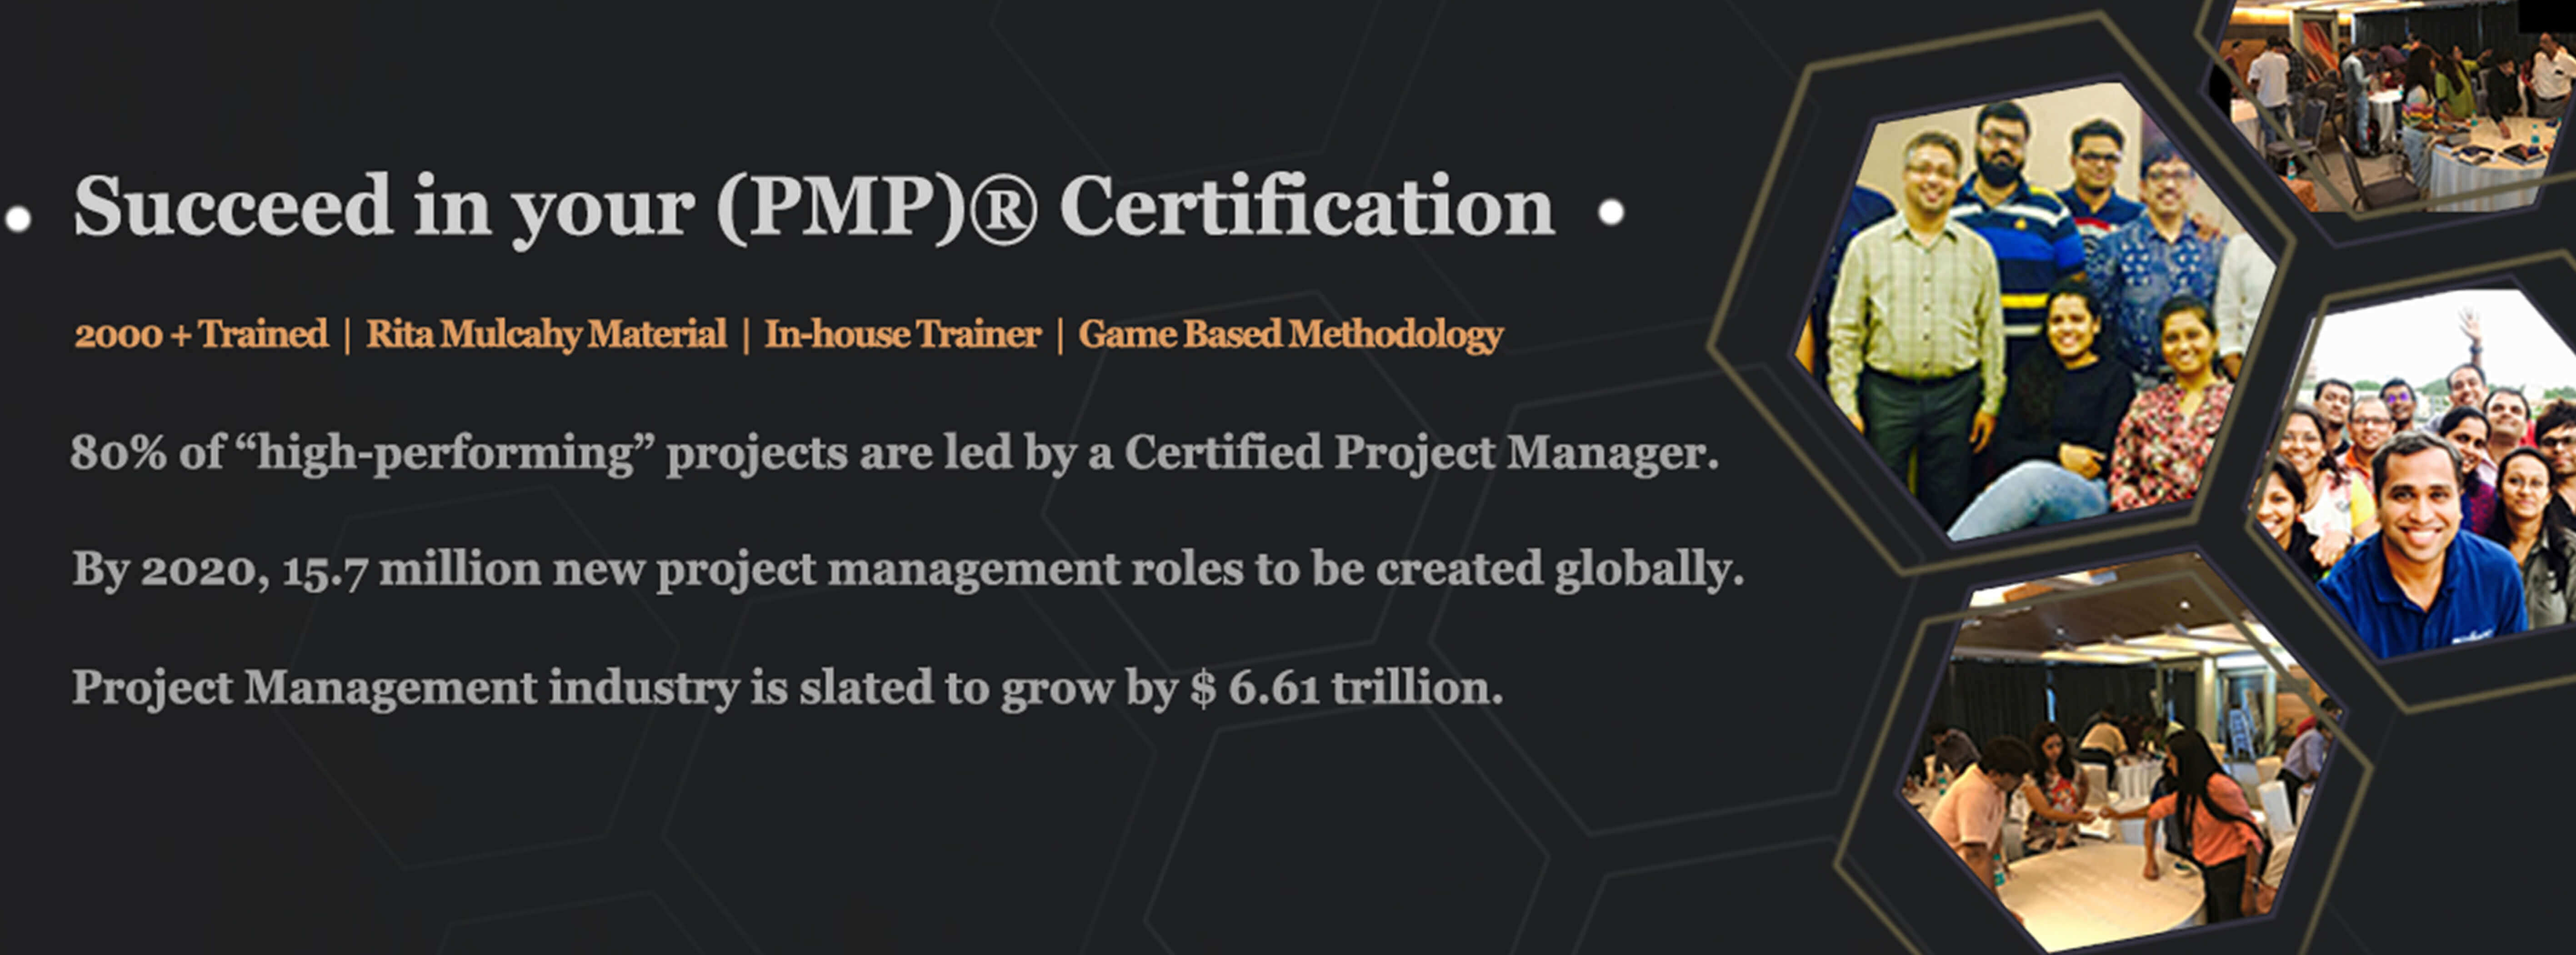 Pmp certification training course in pune prothoughts 1betcityfo Images